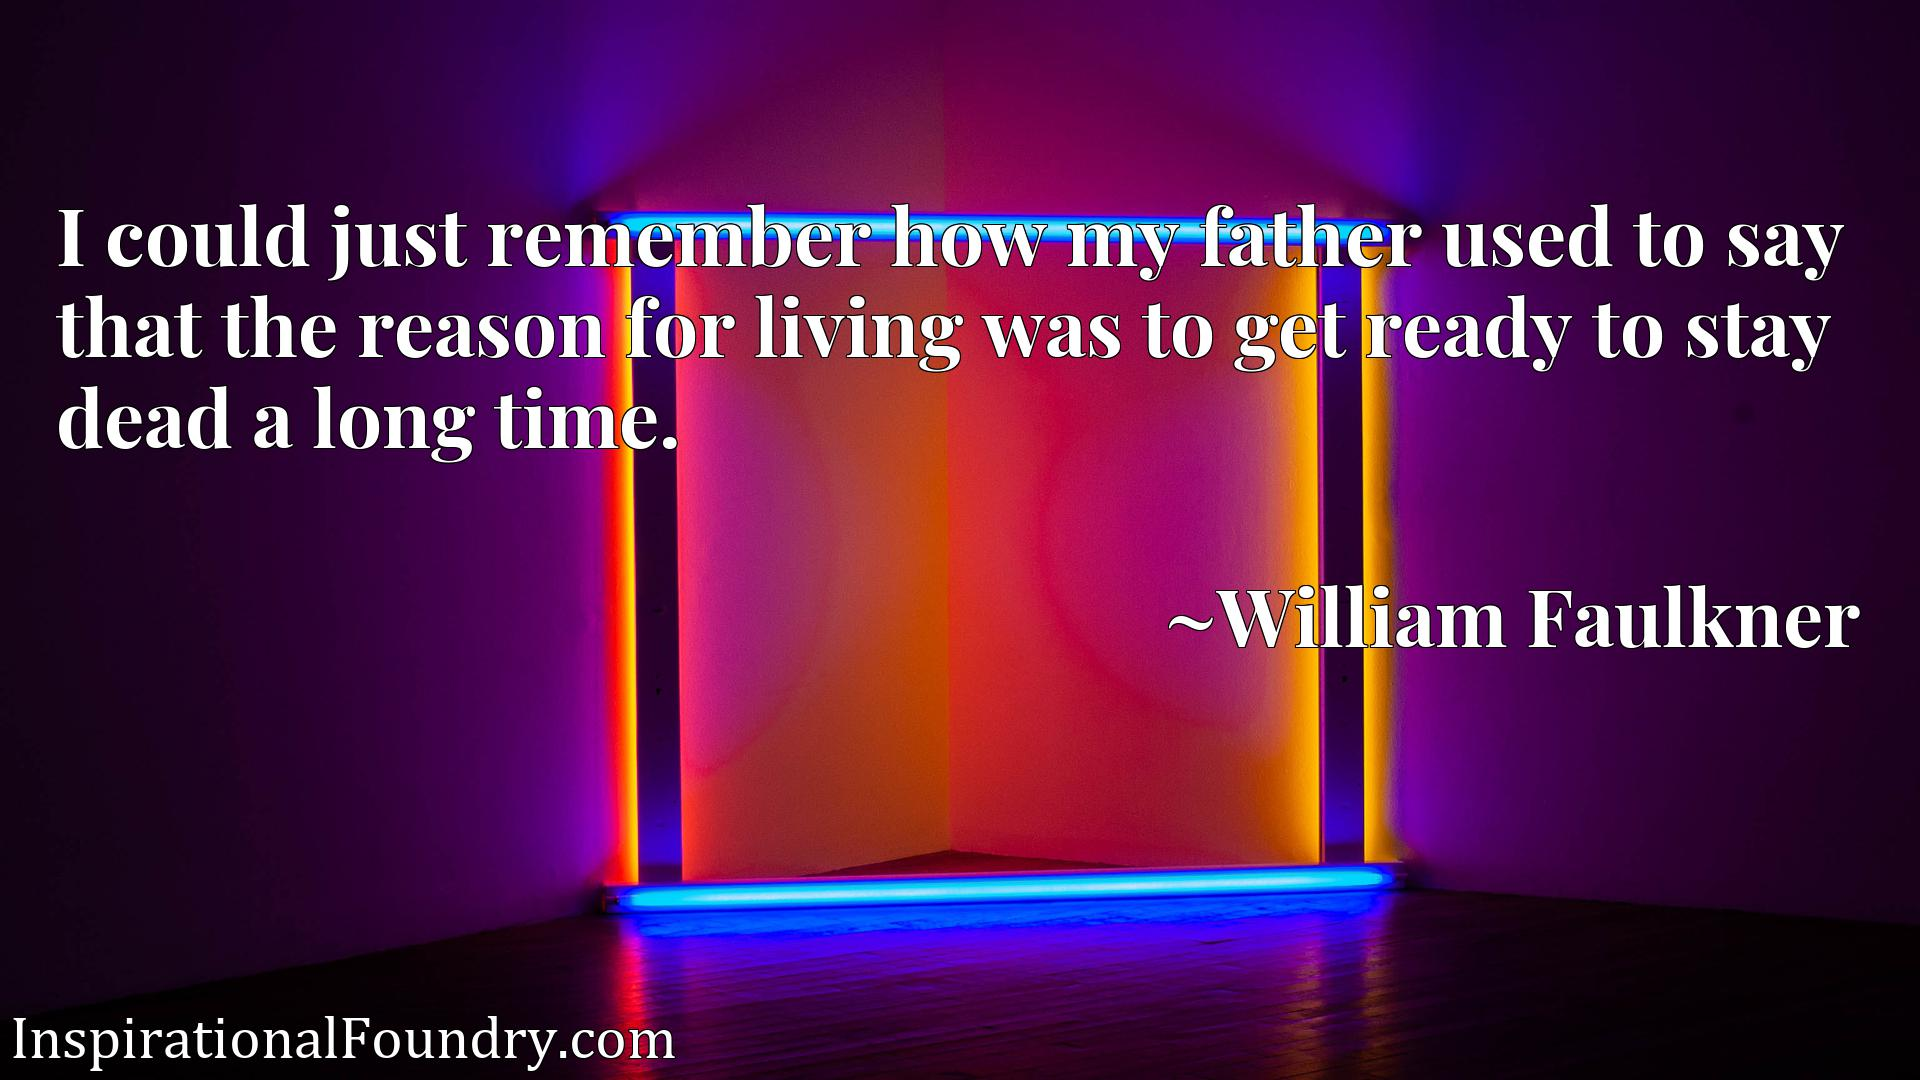 Quote Picture :I could just remember how my father used to say that the reason for living was to get ready to stay dead a long time.